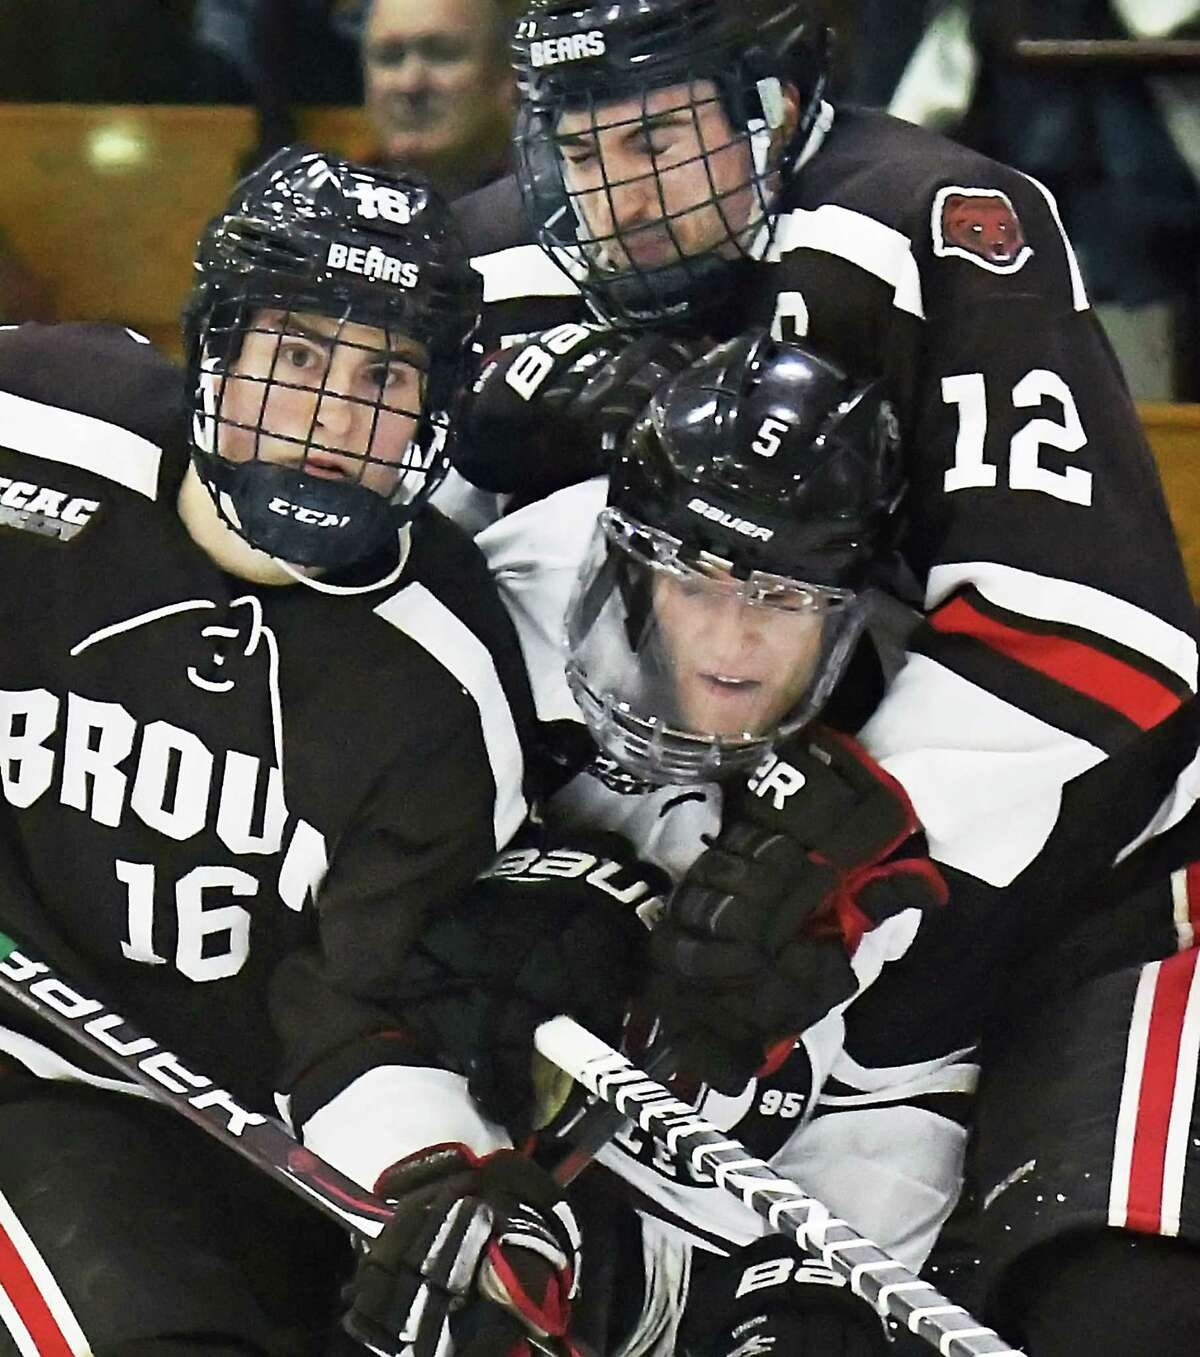 Union's #5 Vas Kolias gets double teamed by Brown's #16 Charlie Corcoran, left, and #12 Josh McArdle, right, during Friday night's game at Messa Rink Dec. 1, 2017 in Schenectady, NY. (John Carl D'Annibale / Times Union)